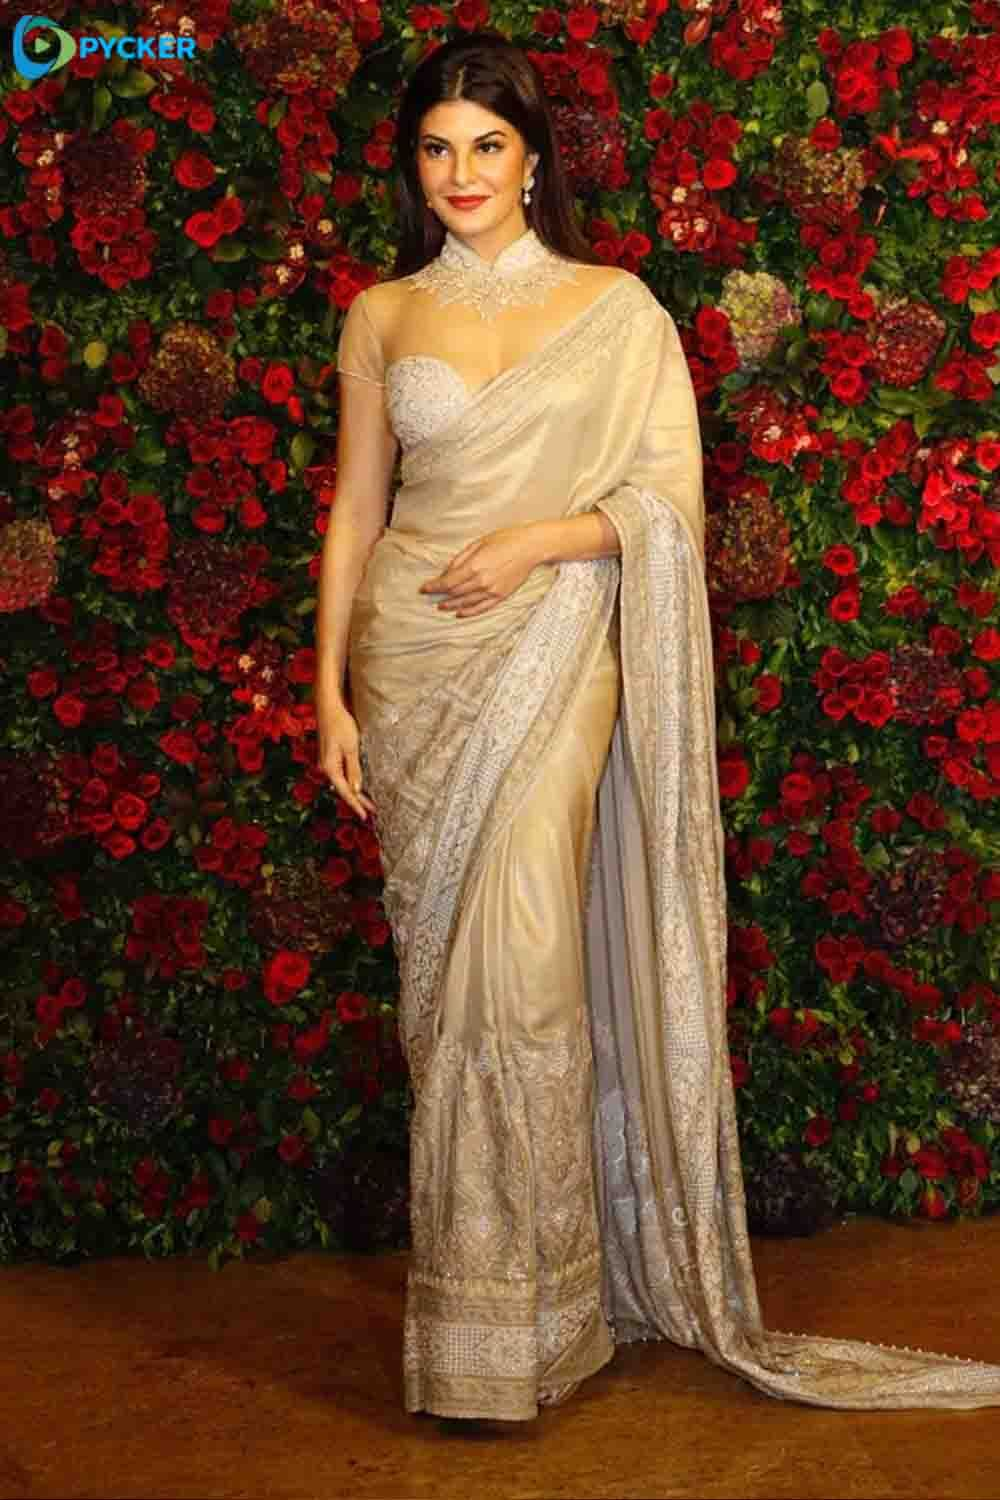 e0b7b9f82b Jacqueline Fernandez looks alluring in this silver designer saree   DeepVeerReception  Necklace  Saree  Designerwear  EmbroideryWork  Redlips   Lips